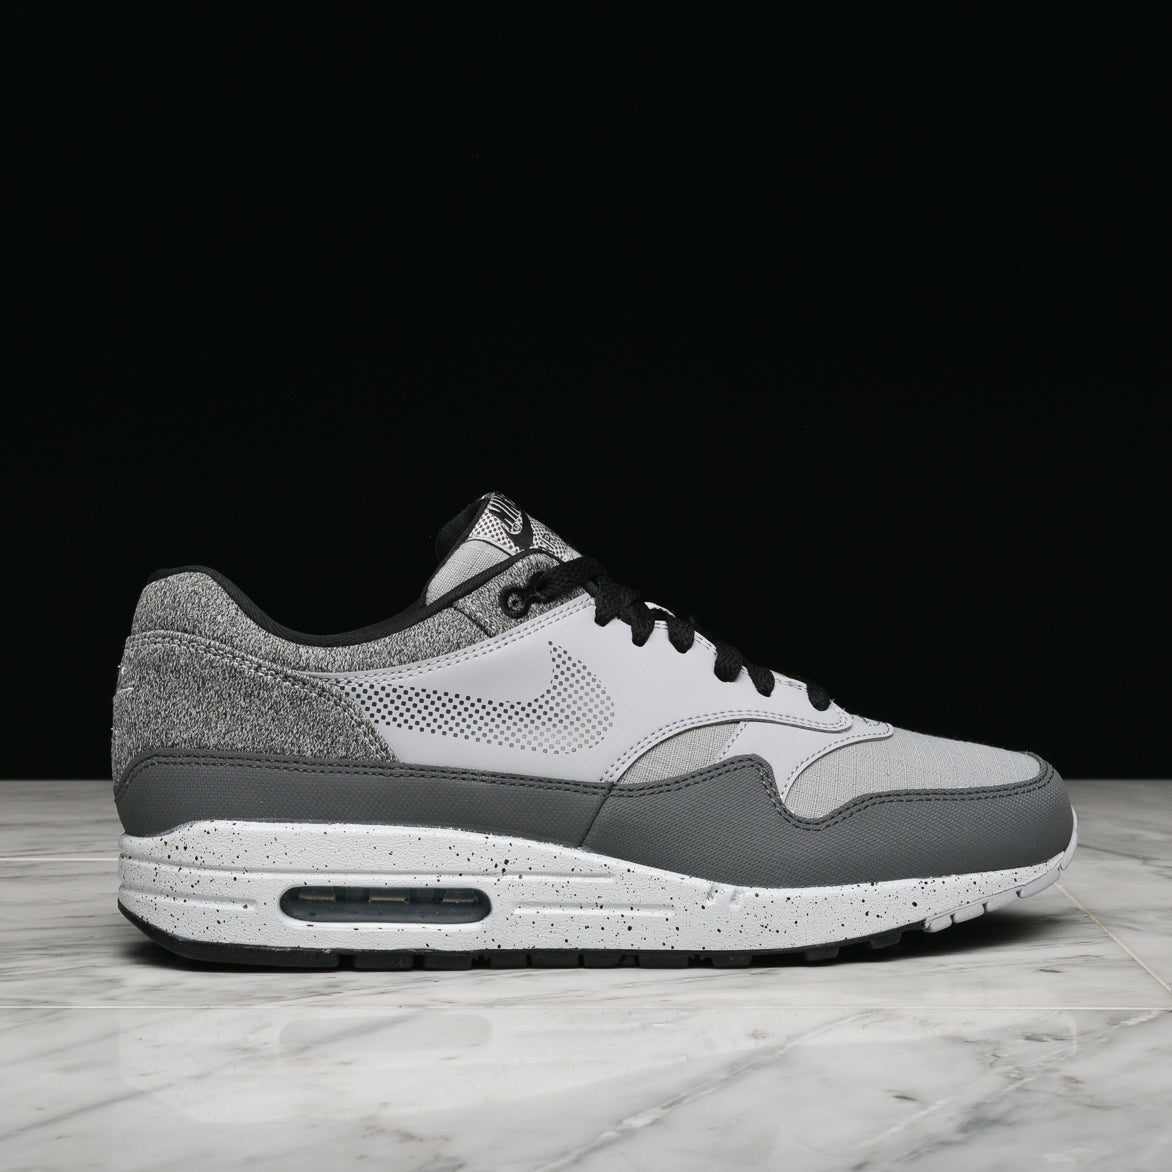 Nike Air Max 1 SE Wolf GreyAnthracite AO1021 002